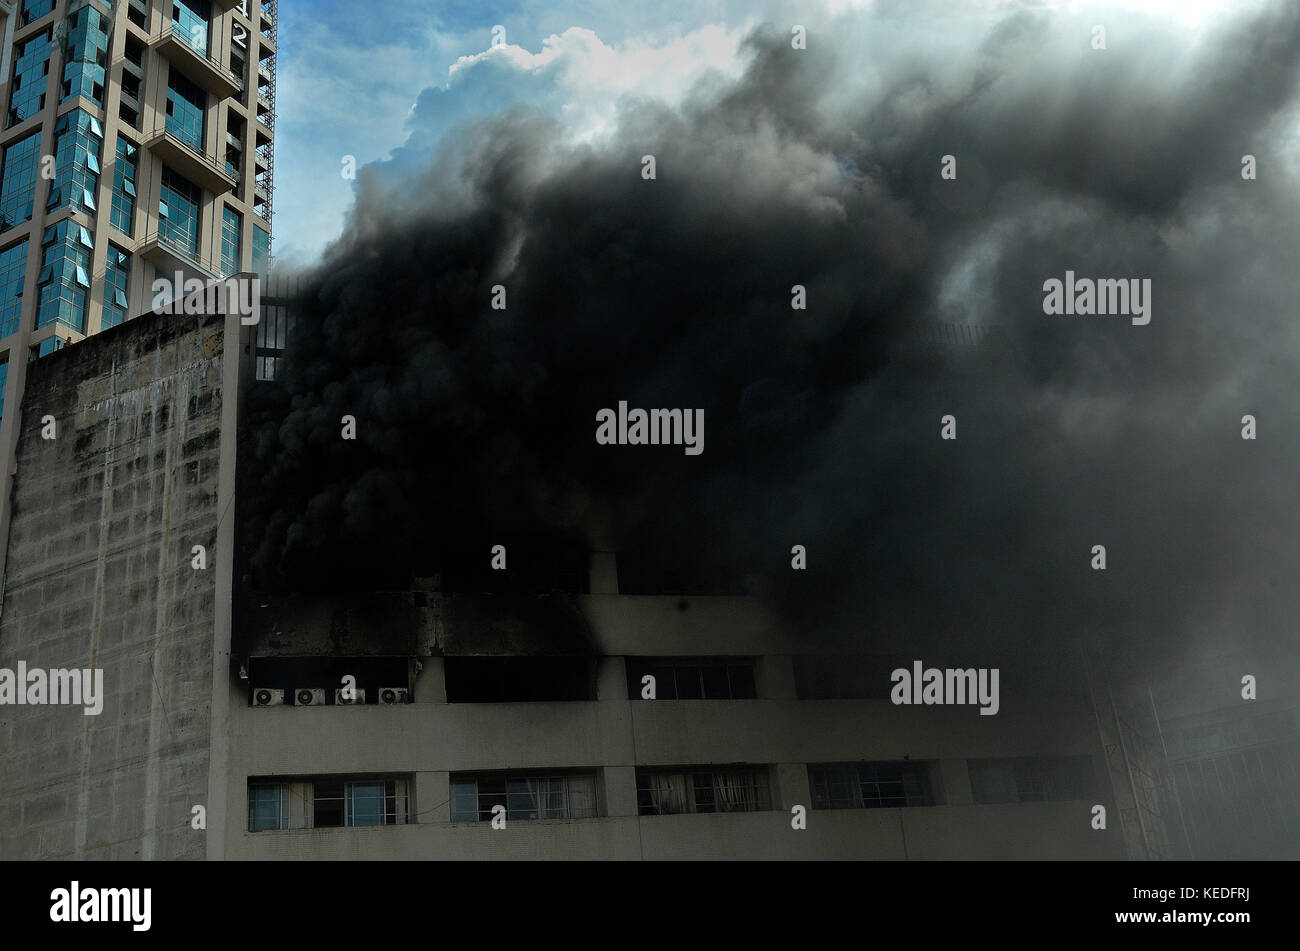 Kolkata, India. 18th Oct, 2017. Smoke and flames come out from the window after a high rise office building caught - Stock Image